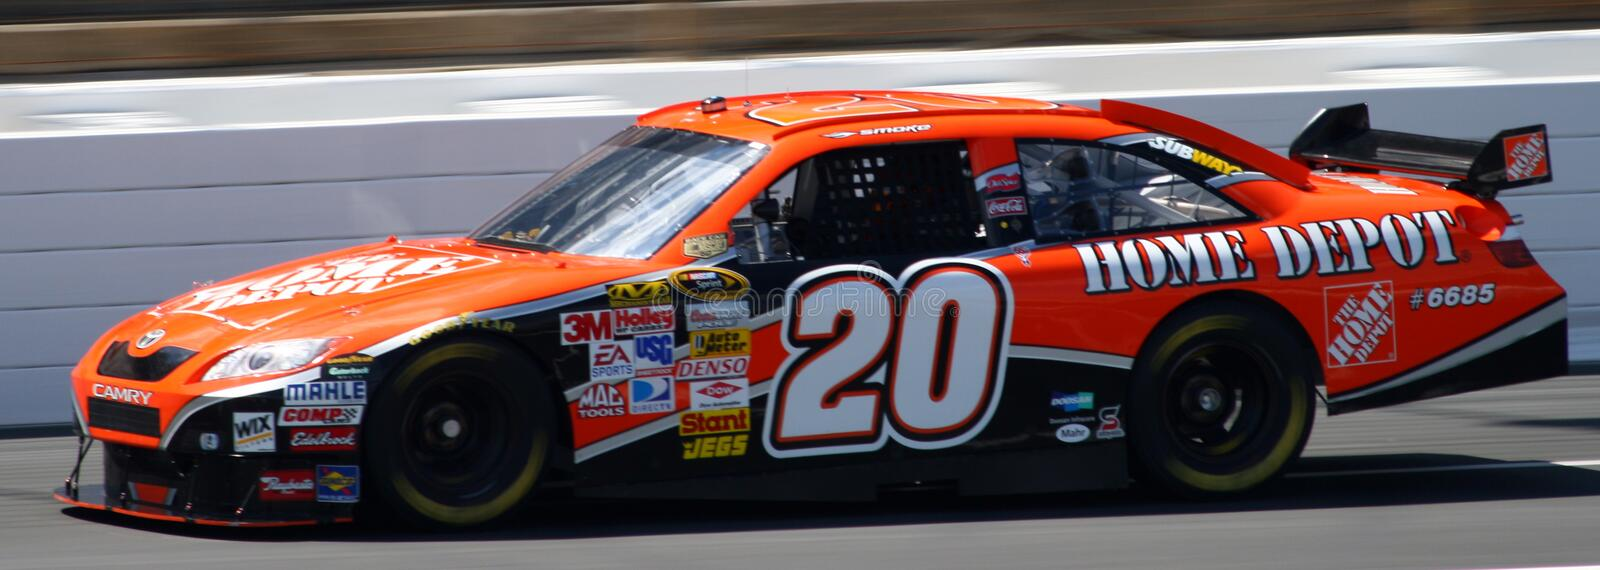 NASCAR - Stewart's #20 Home Depot COT royalty free stock photo